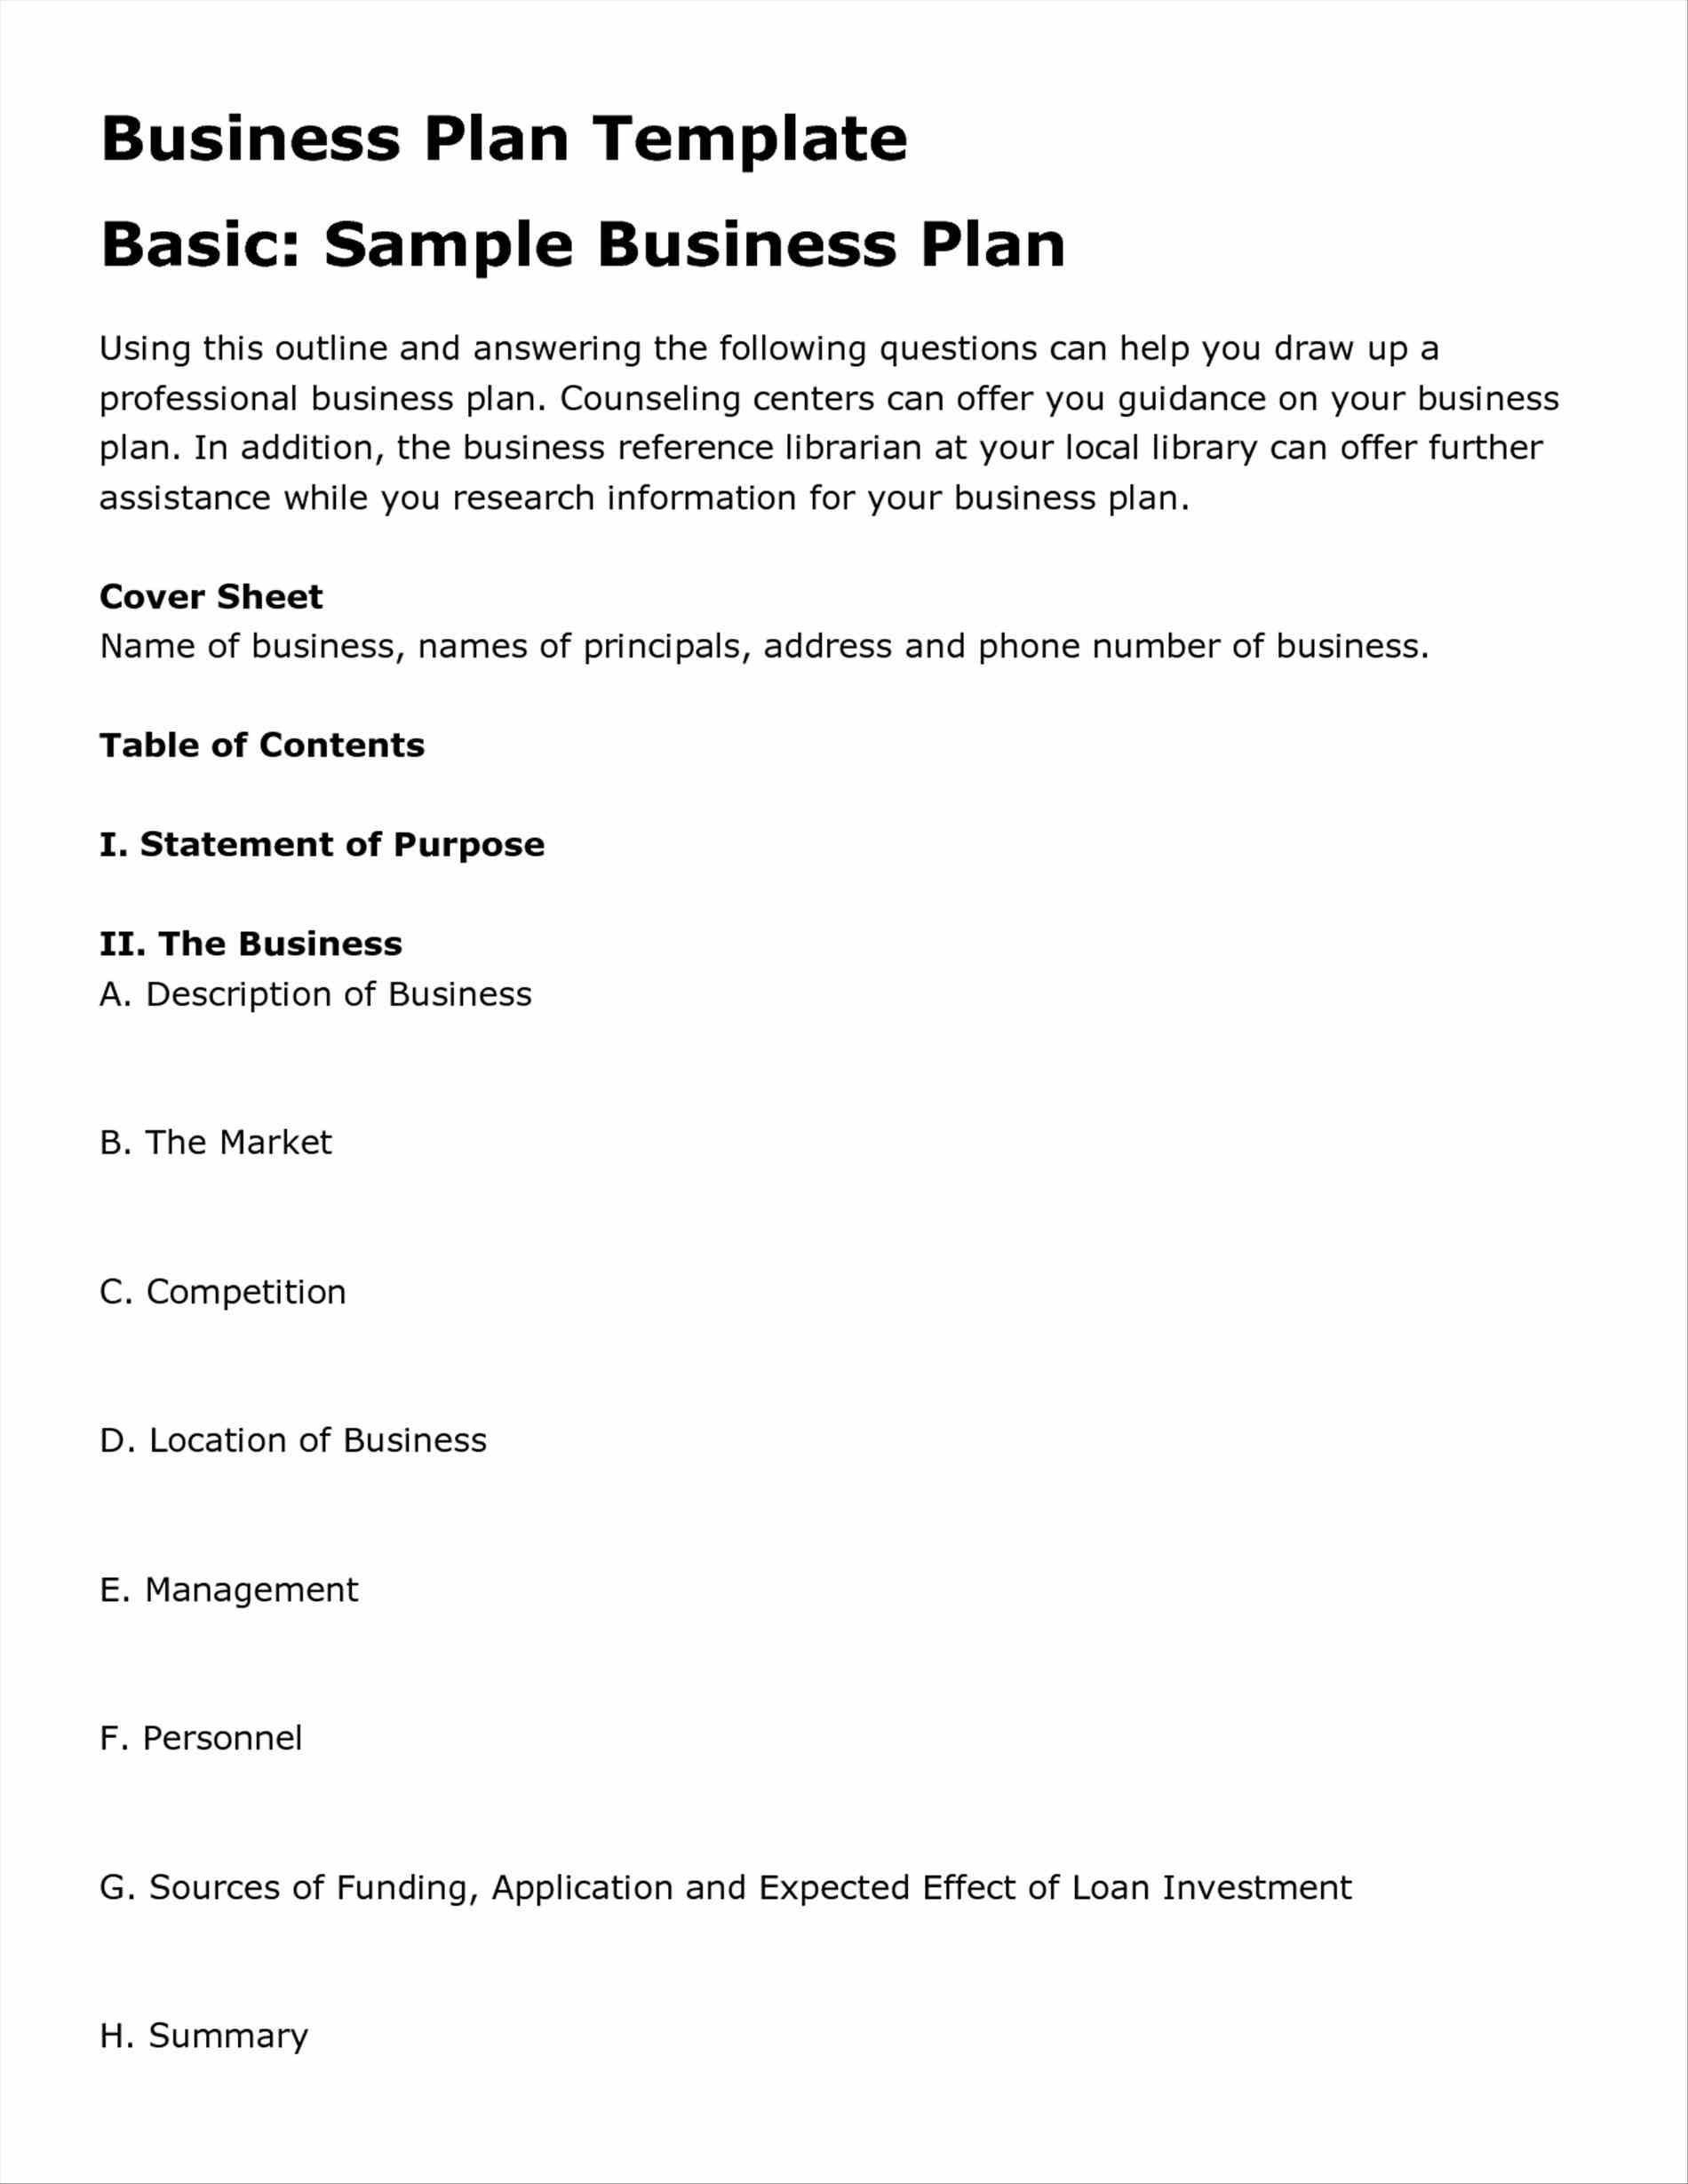 Business Plan Template Restaurant Templates In Word Excel Pdf Free Regarding Business Plan For Cafe Free Template